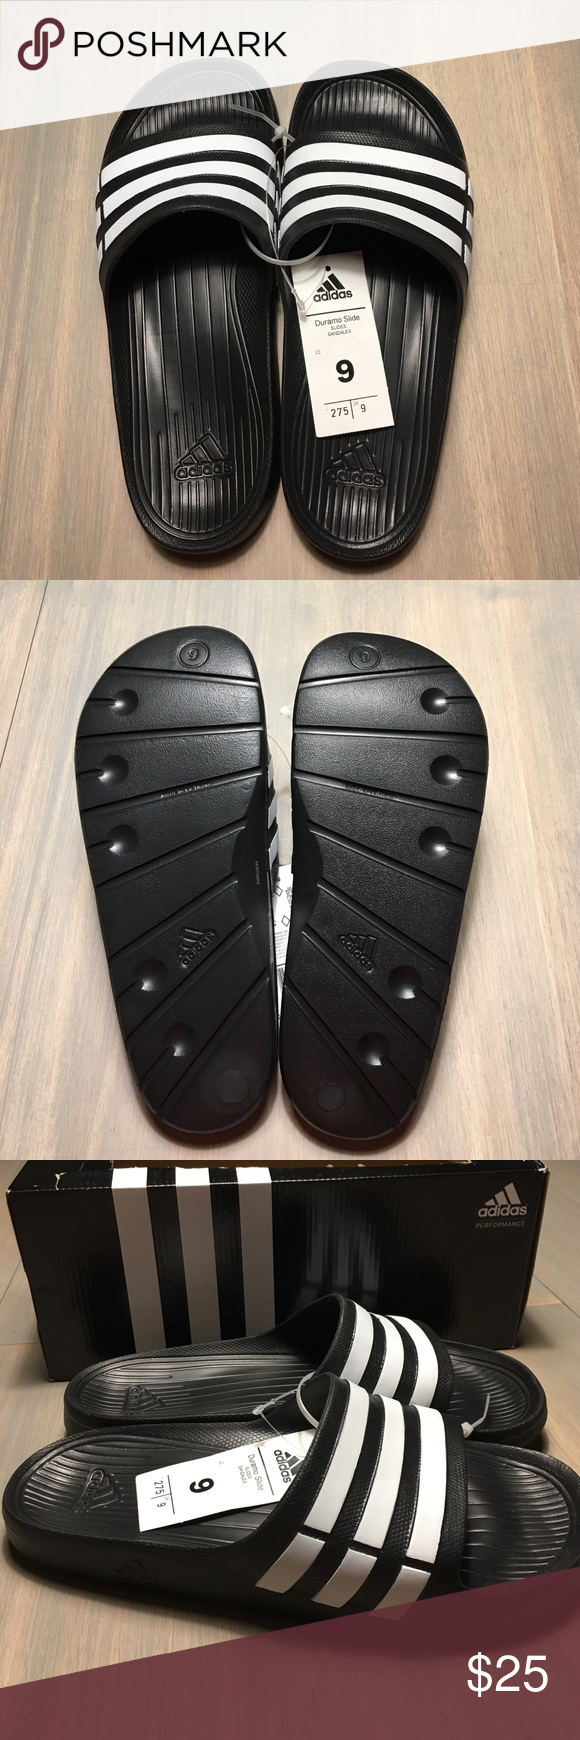 64e39207c903 Adidas Duramo Slides - Size 9 - NIB Comfortable slides in black white  stripes.